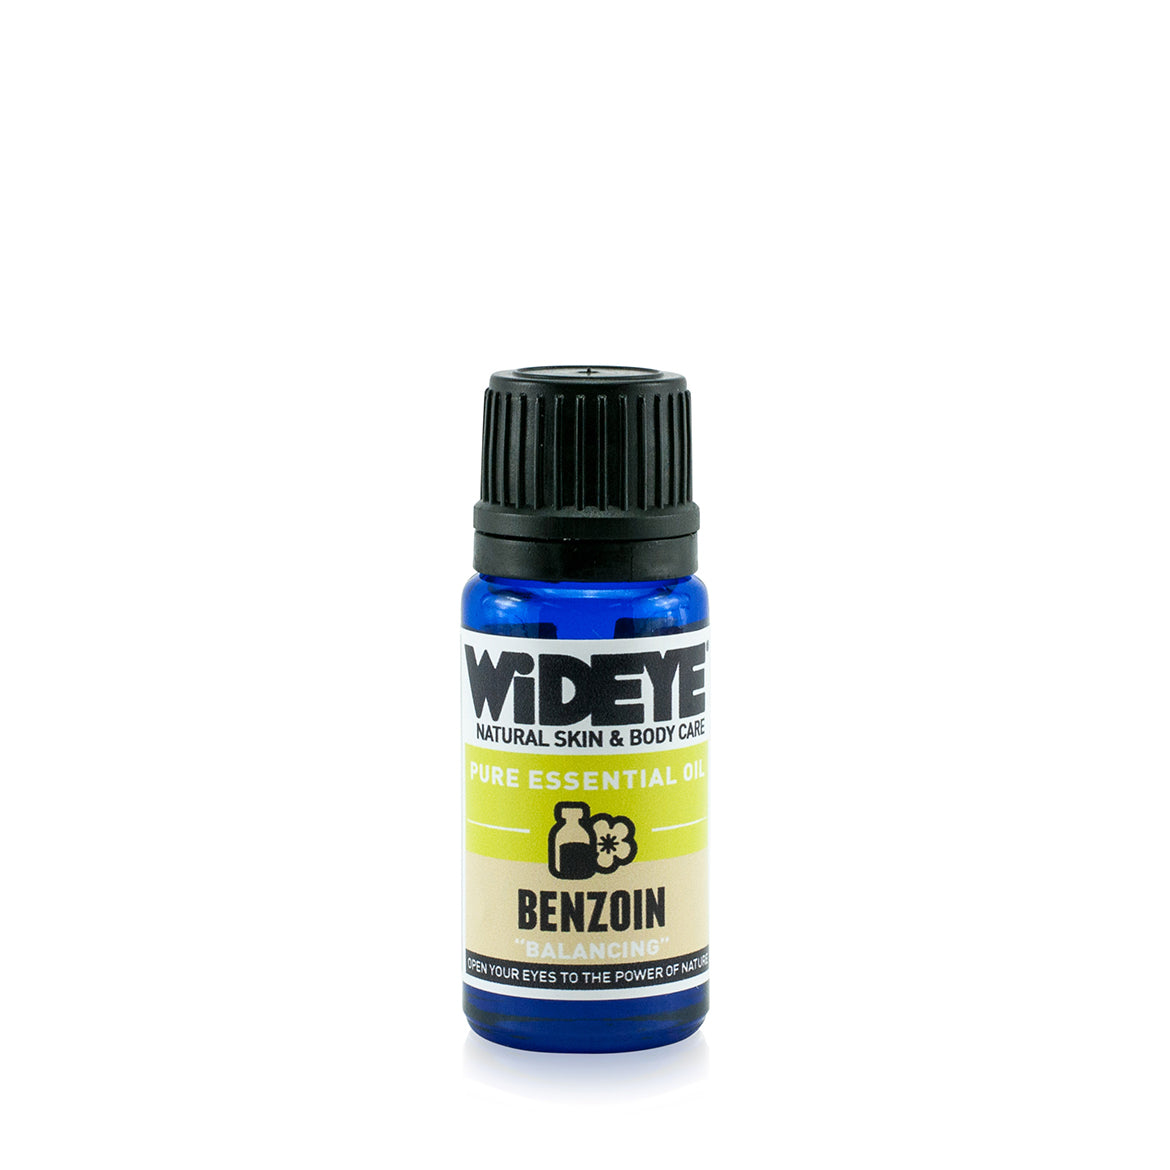 Natural vegan aromatherapy Benzoin essential oil in glass bottle.